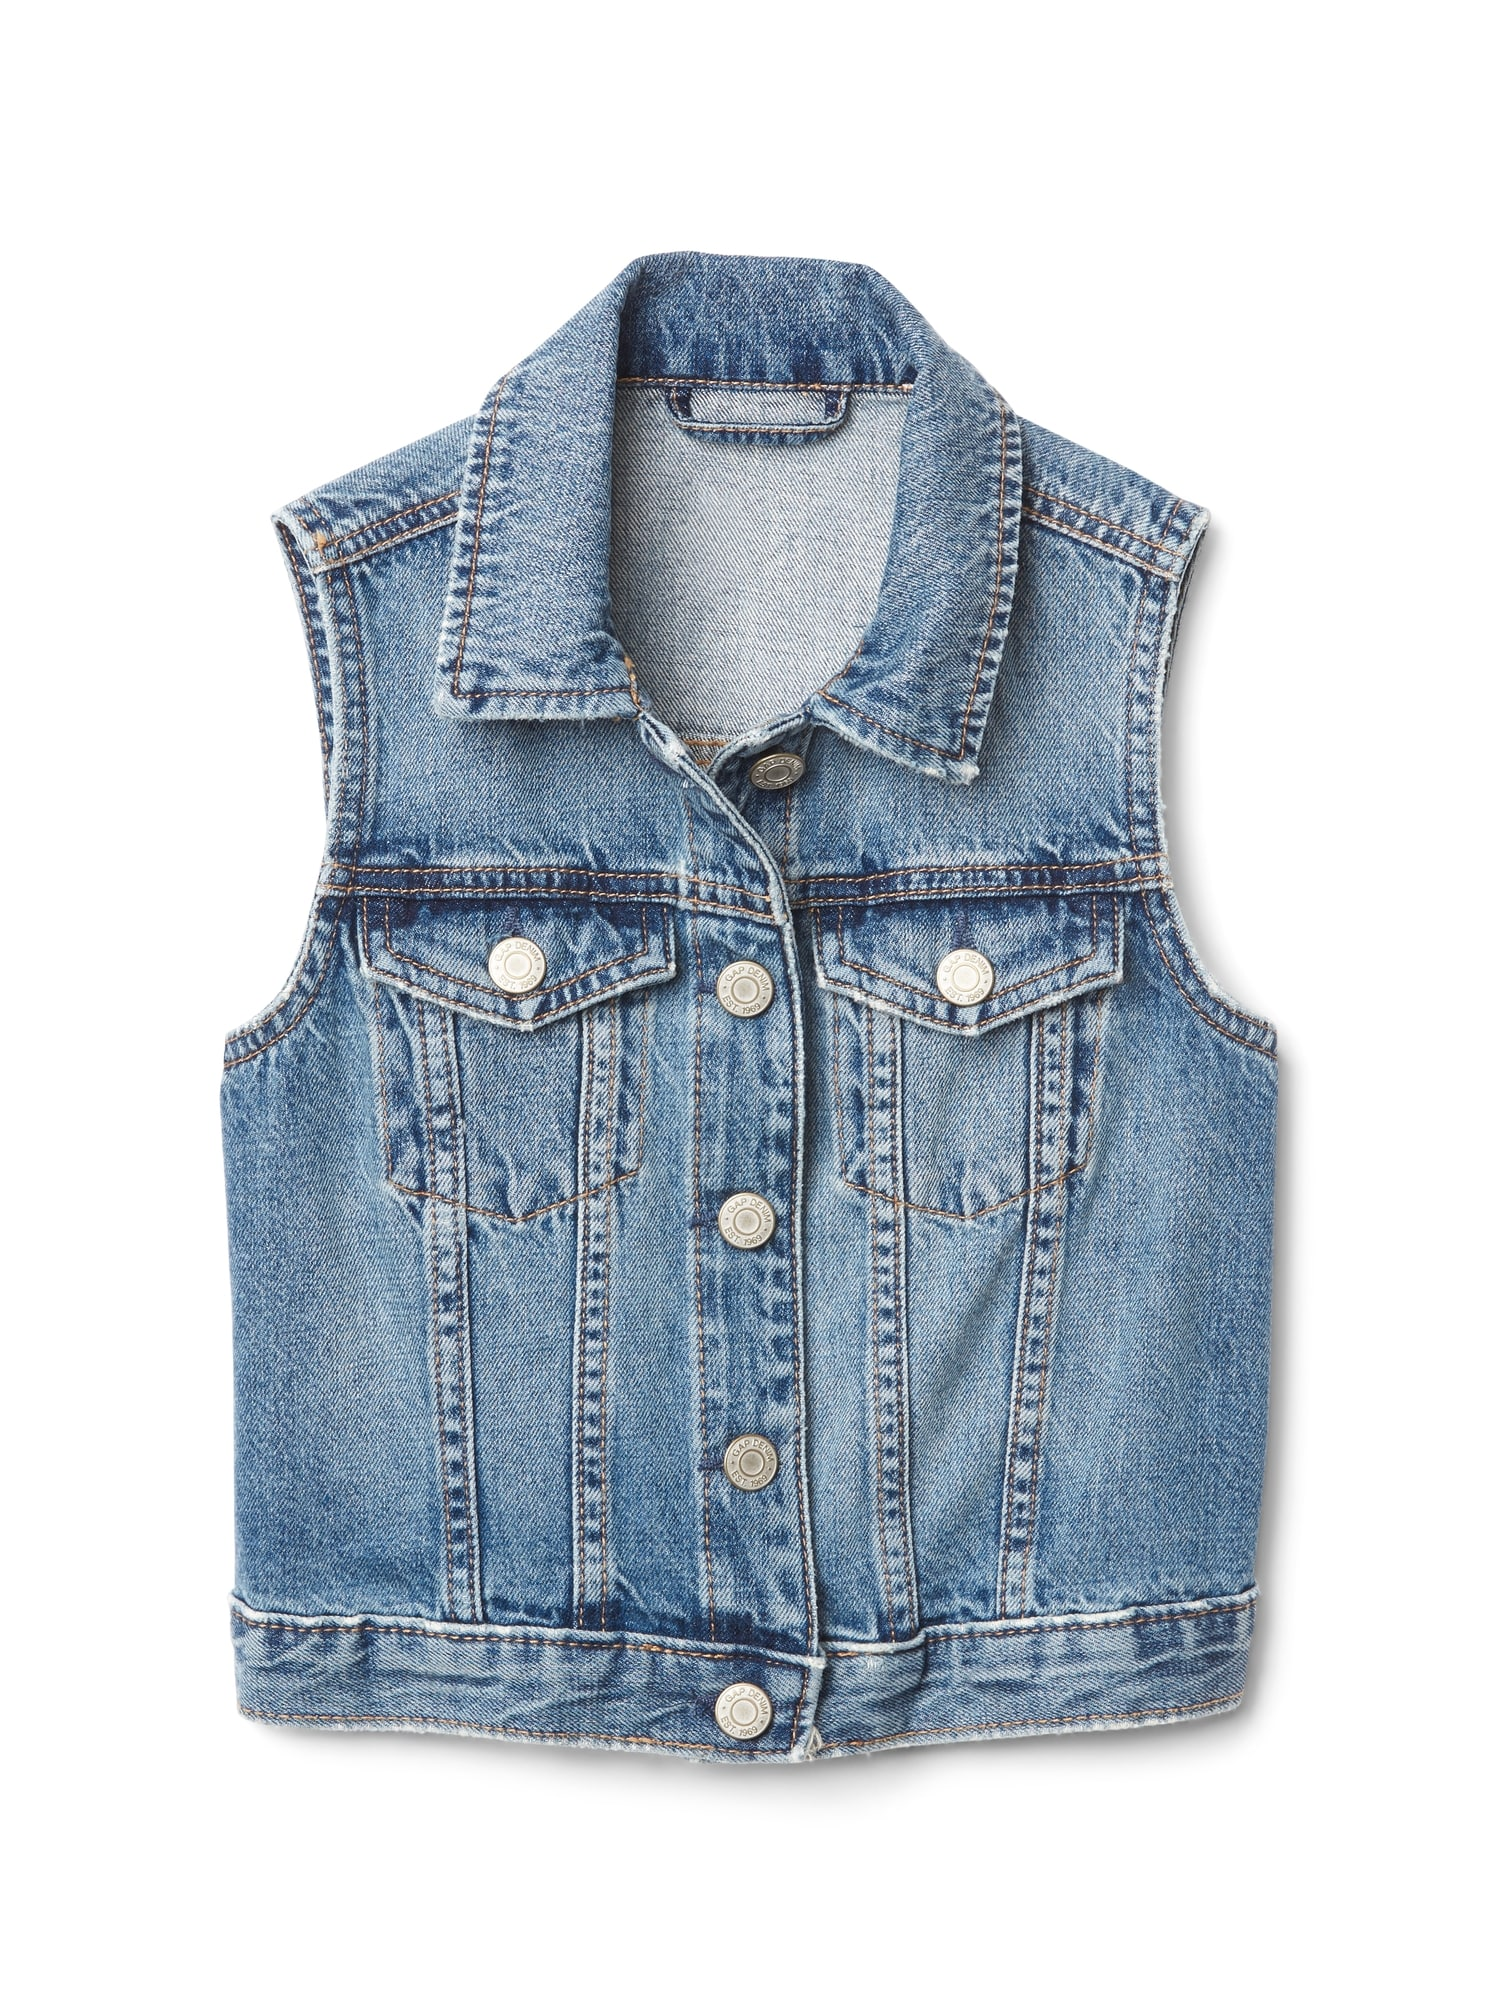 DENIM - Denim outerwear IVI Collection Clearance Inexpensive 2018 High Quality Buy Online Pay With Visa Online How Much Online nircW